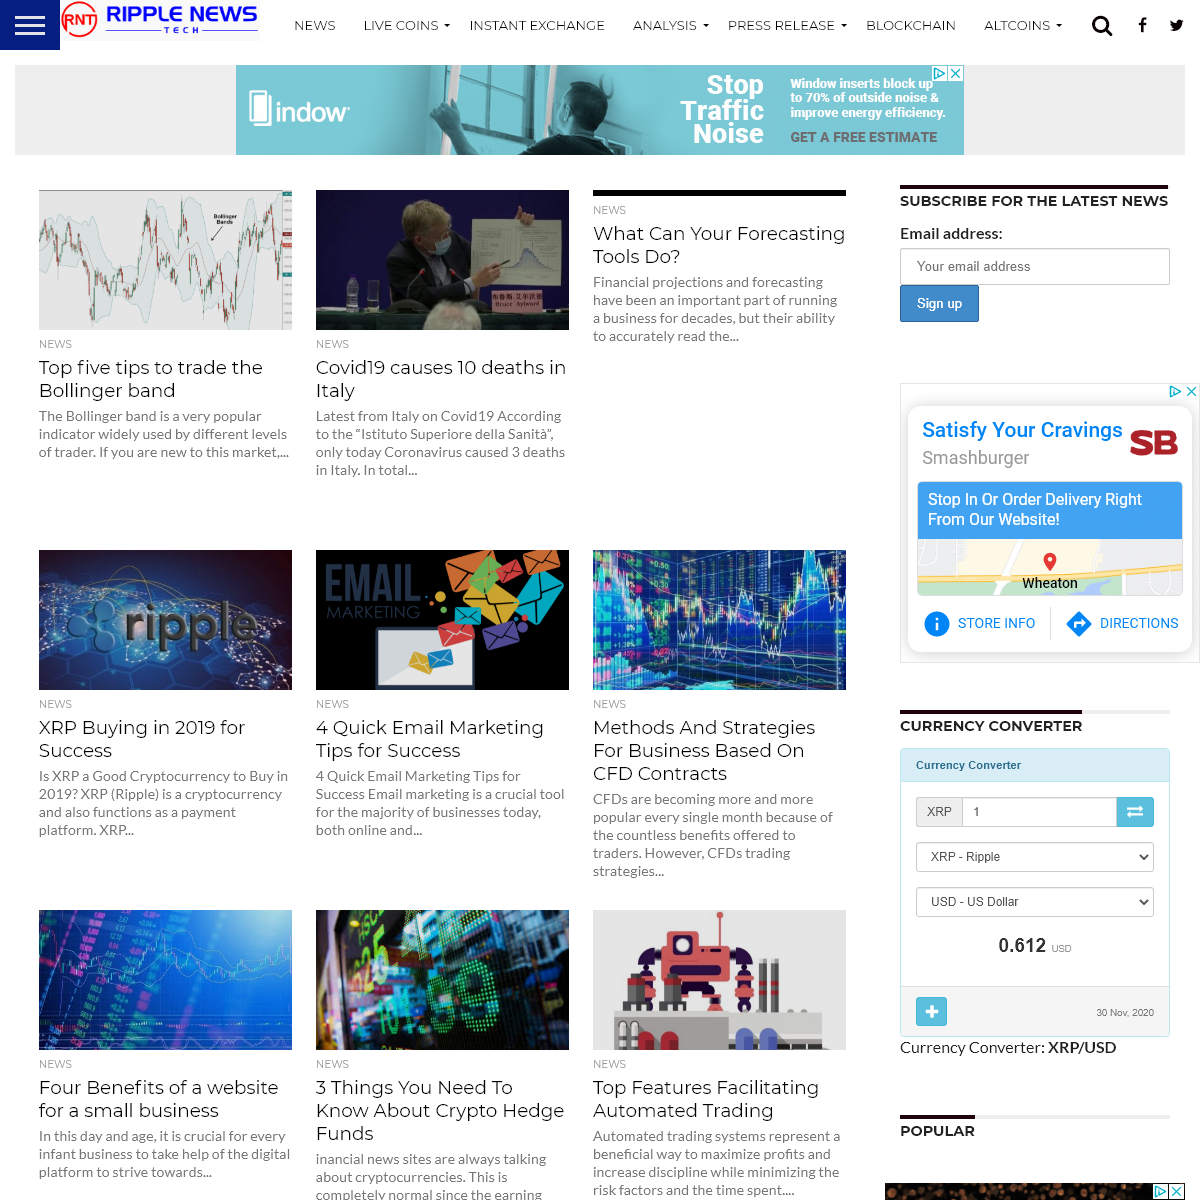 Ripple News Tech - News, Analysis, Informations and Updates About Ripple